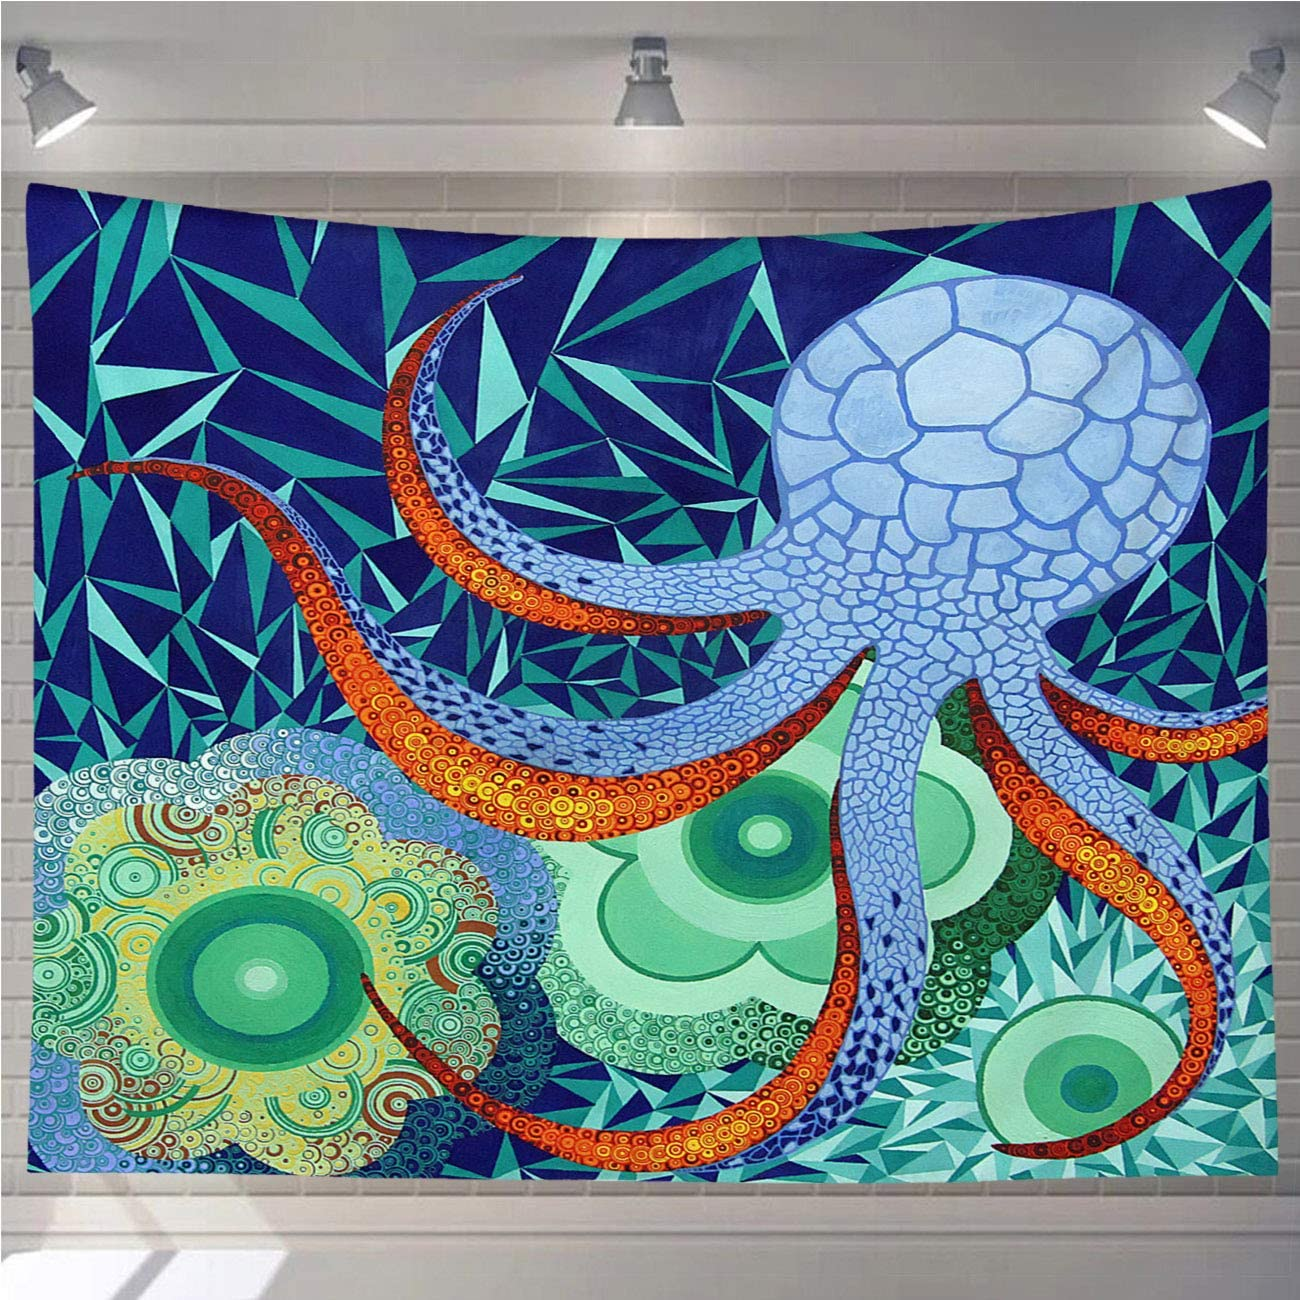 OTTOSUN Octopus Tapestry Wall Hanging,Abstract Octopus Garden,Nature Home Decorations for Living Room Bedroom Dining Room Dorm,80x60 in